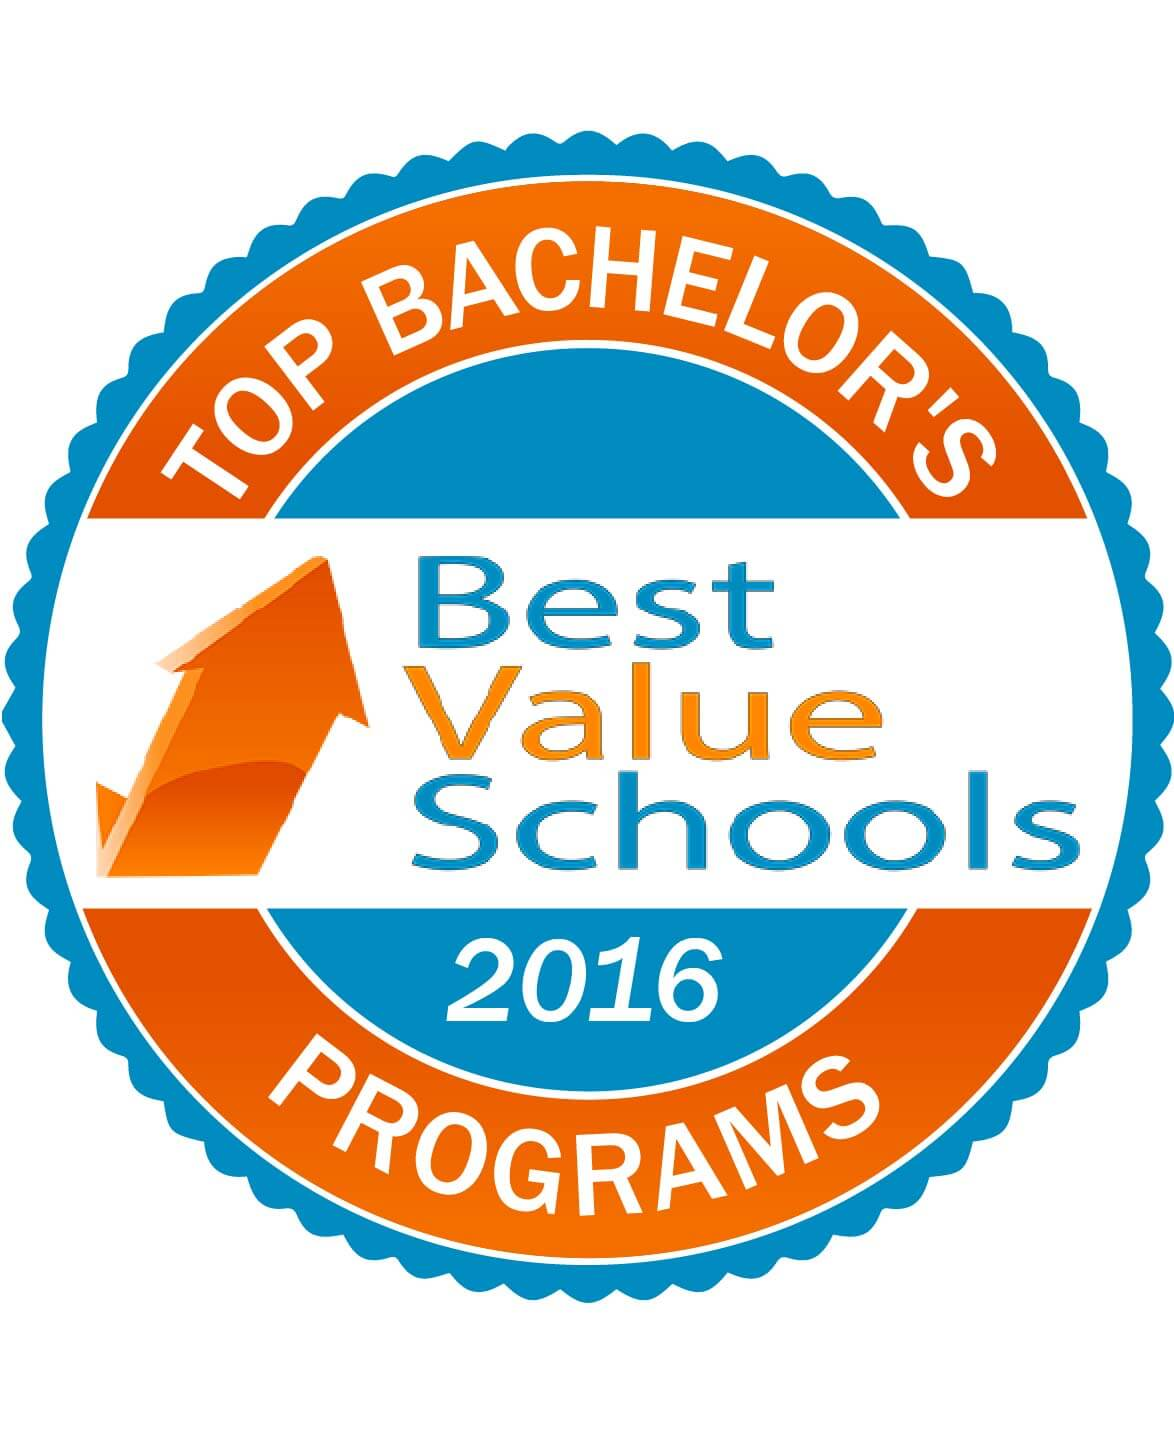 Best-Value-Schools-Top-Bachelors-Programs-2016-1.jpg